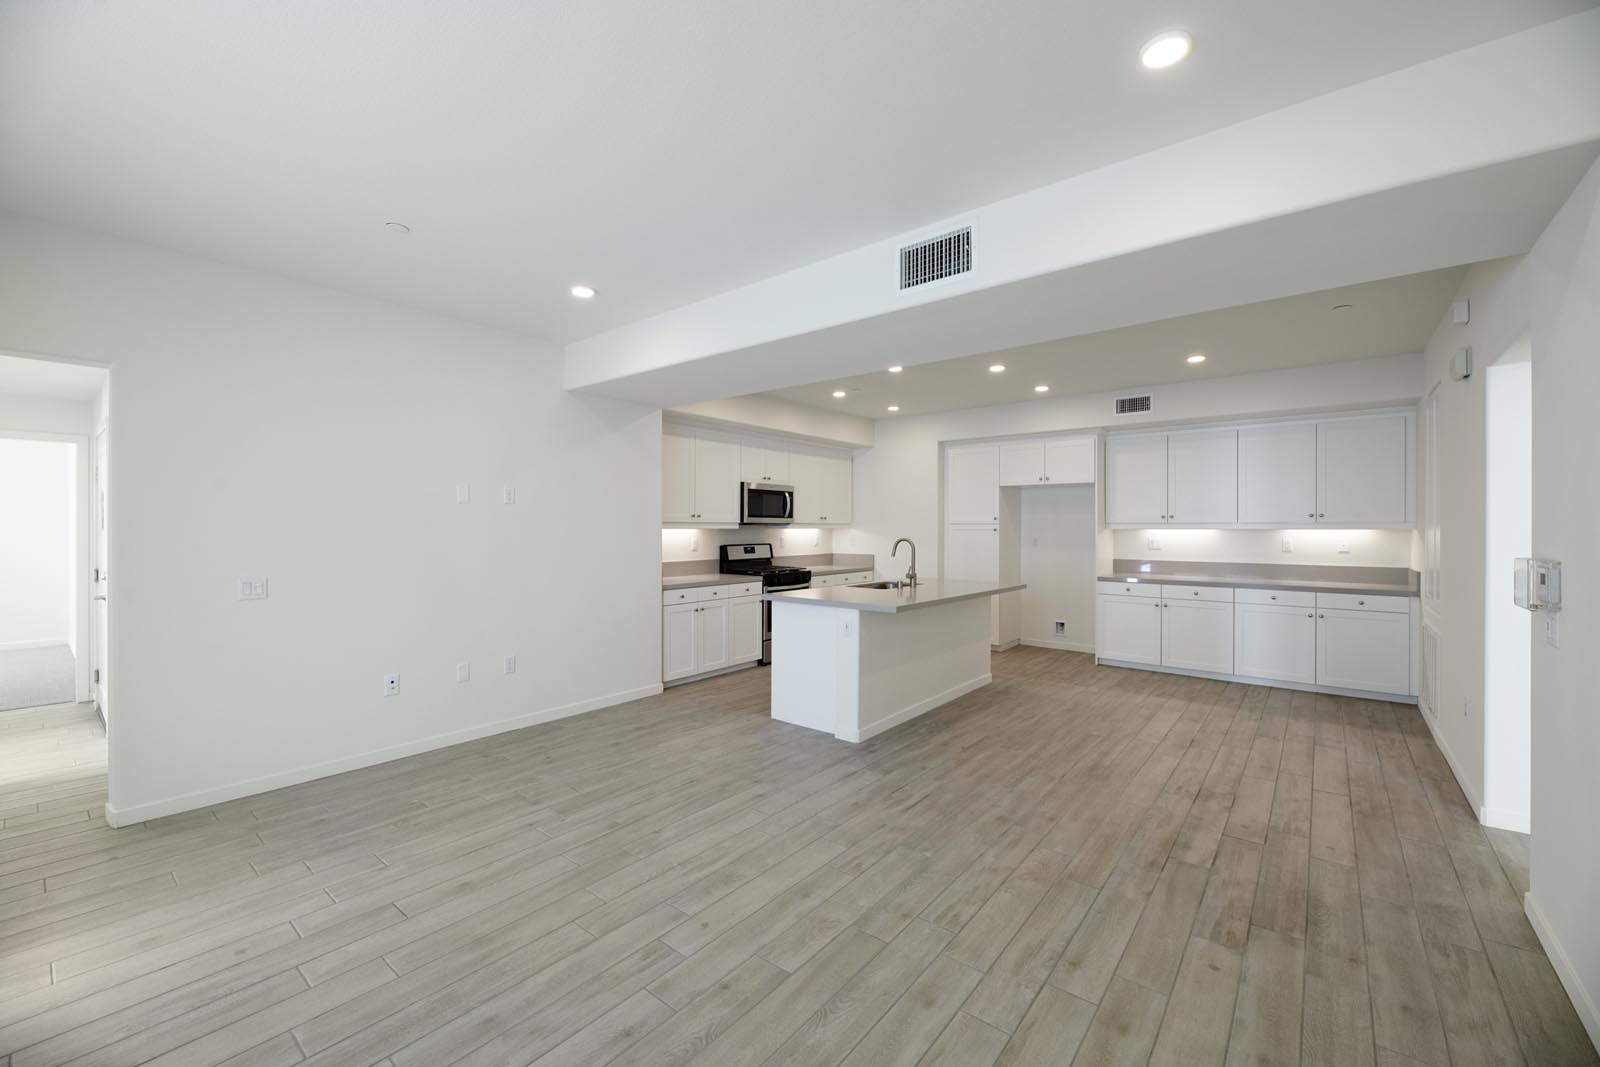 Great Room to Kitchen | Residence 2 | Aspire | New Homes in Rancho Cucamonga, CA | Van Daele Homes